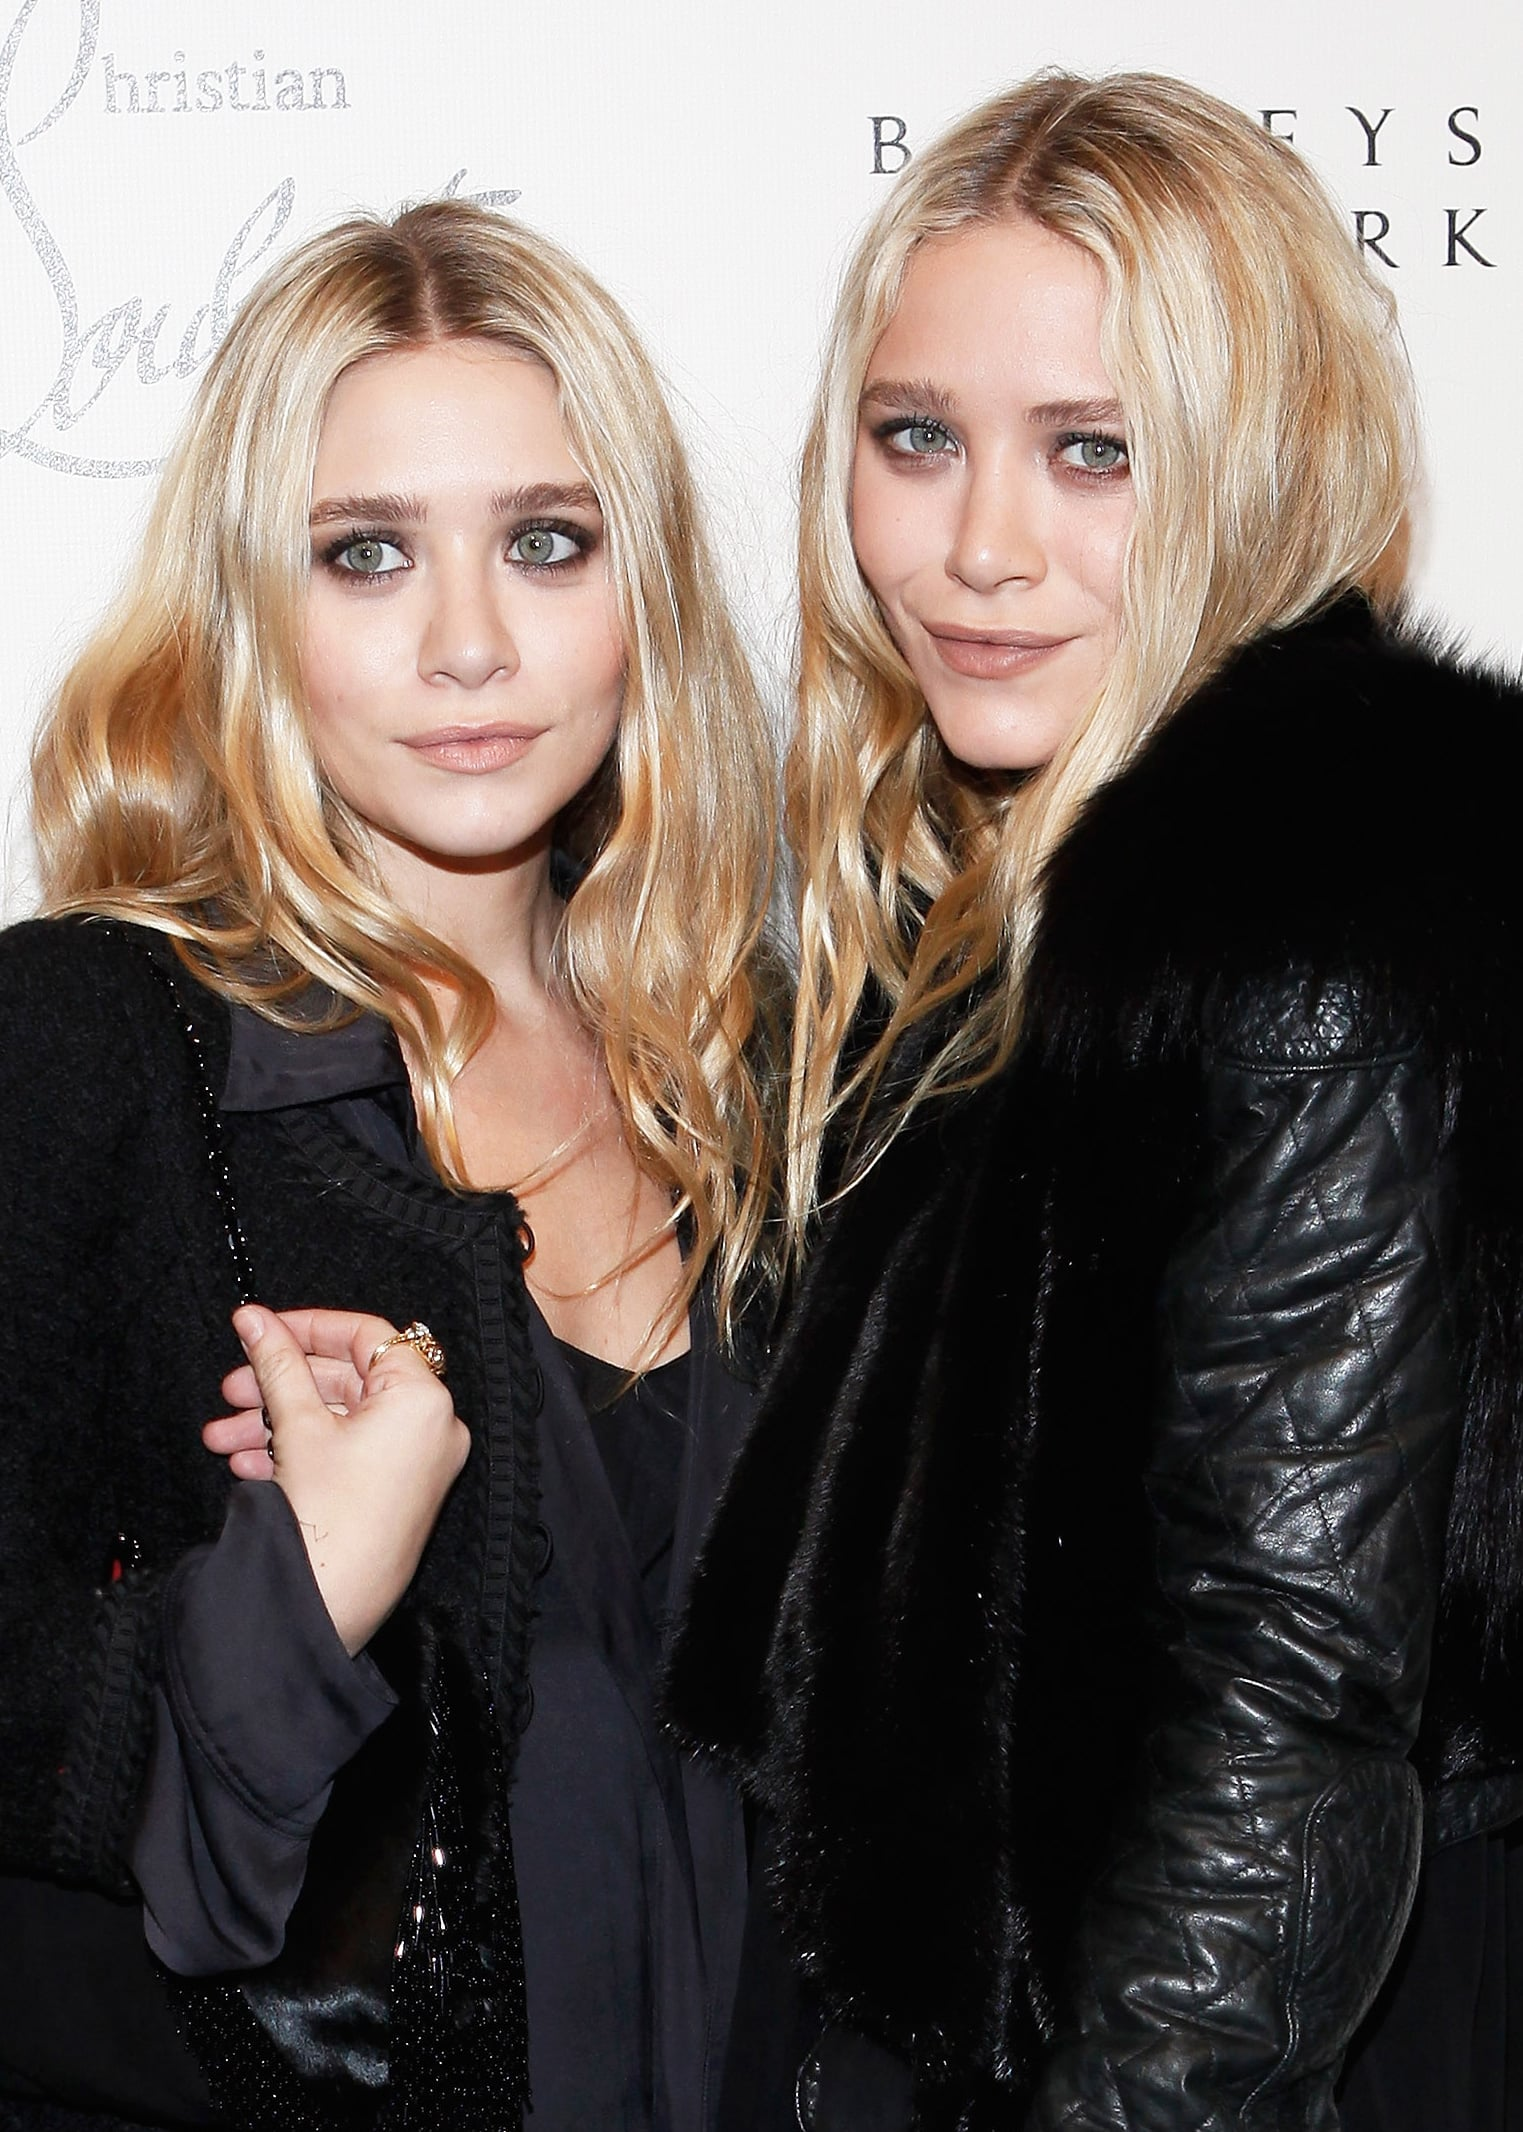 At a Christian Louboutin cocktail party in 2011, the pair dressed up in black with matching beauty looks.